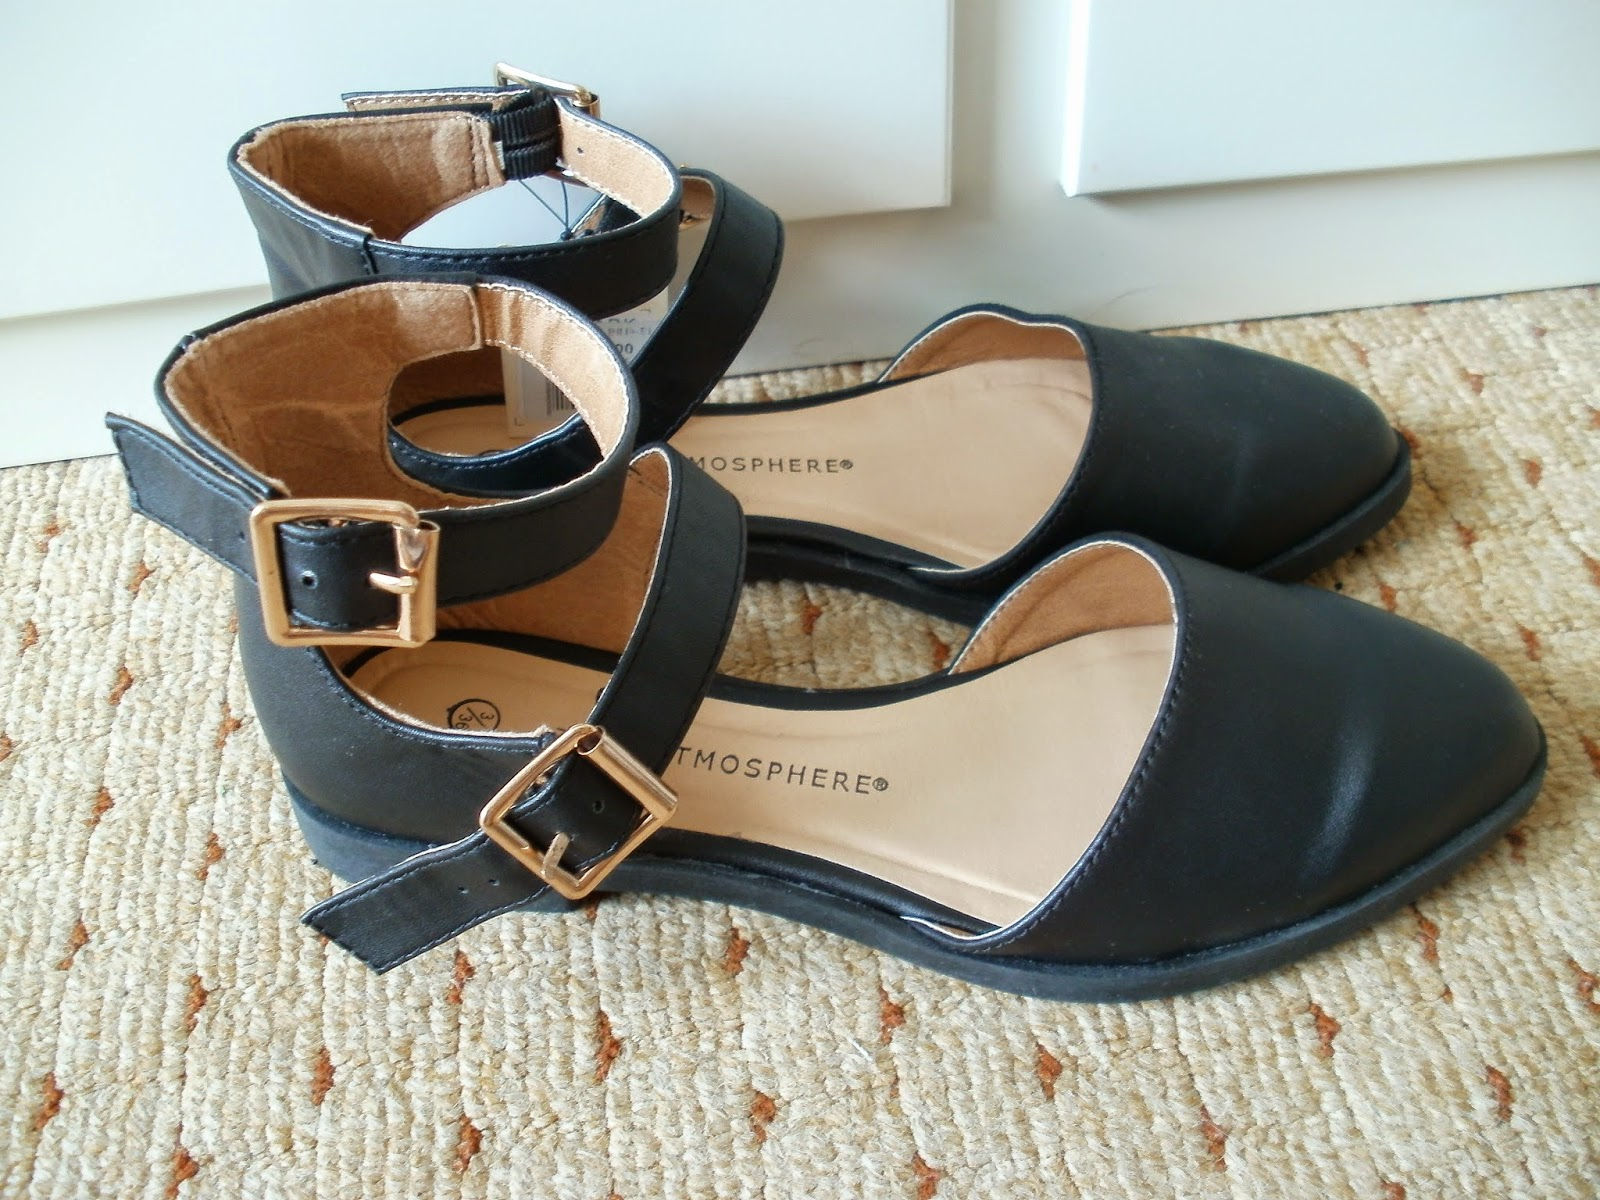 c20bfdac701 Porcelain Eleanor: Shoes on a Shoestring #9 Primark Pointed Toe ...